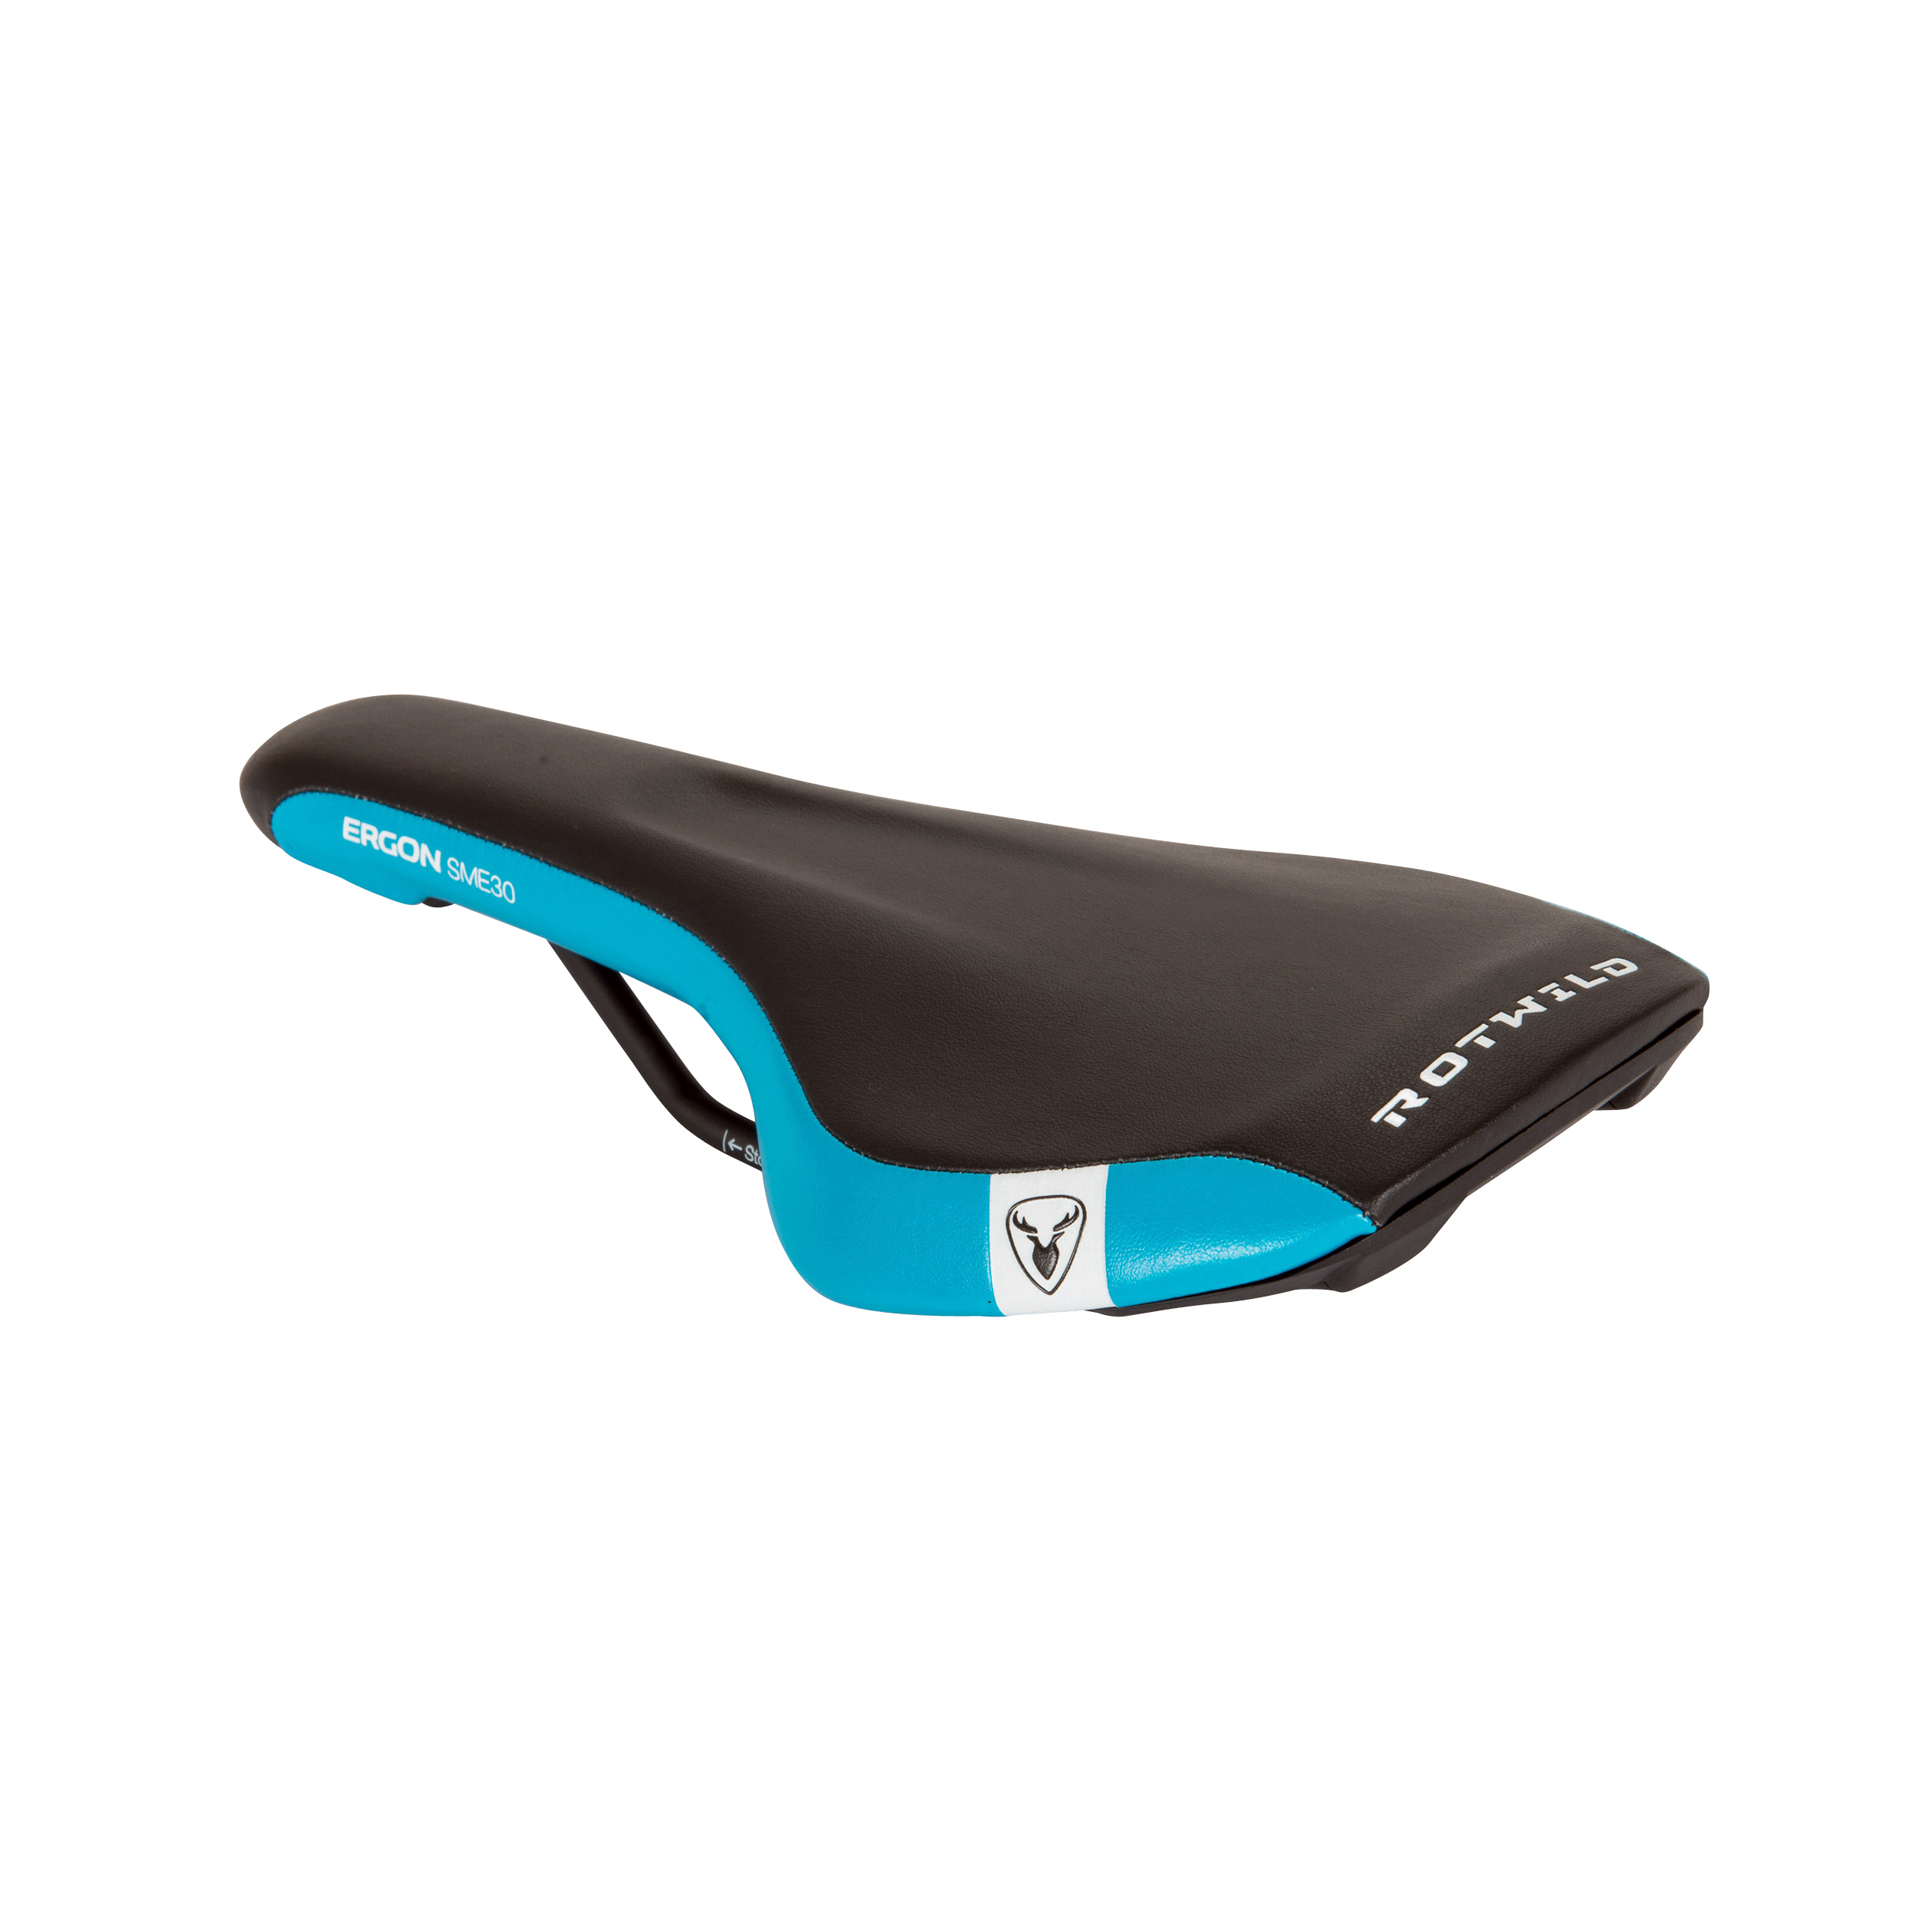 ERGON SME30 ROTWILD EDITION - black/blue - BikeAcademy